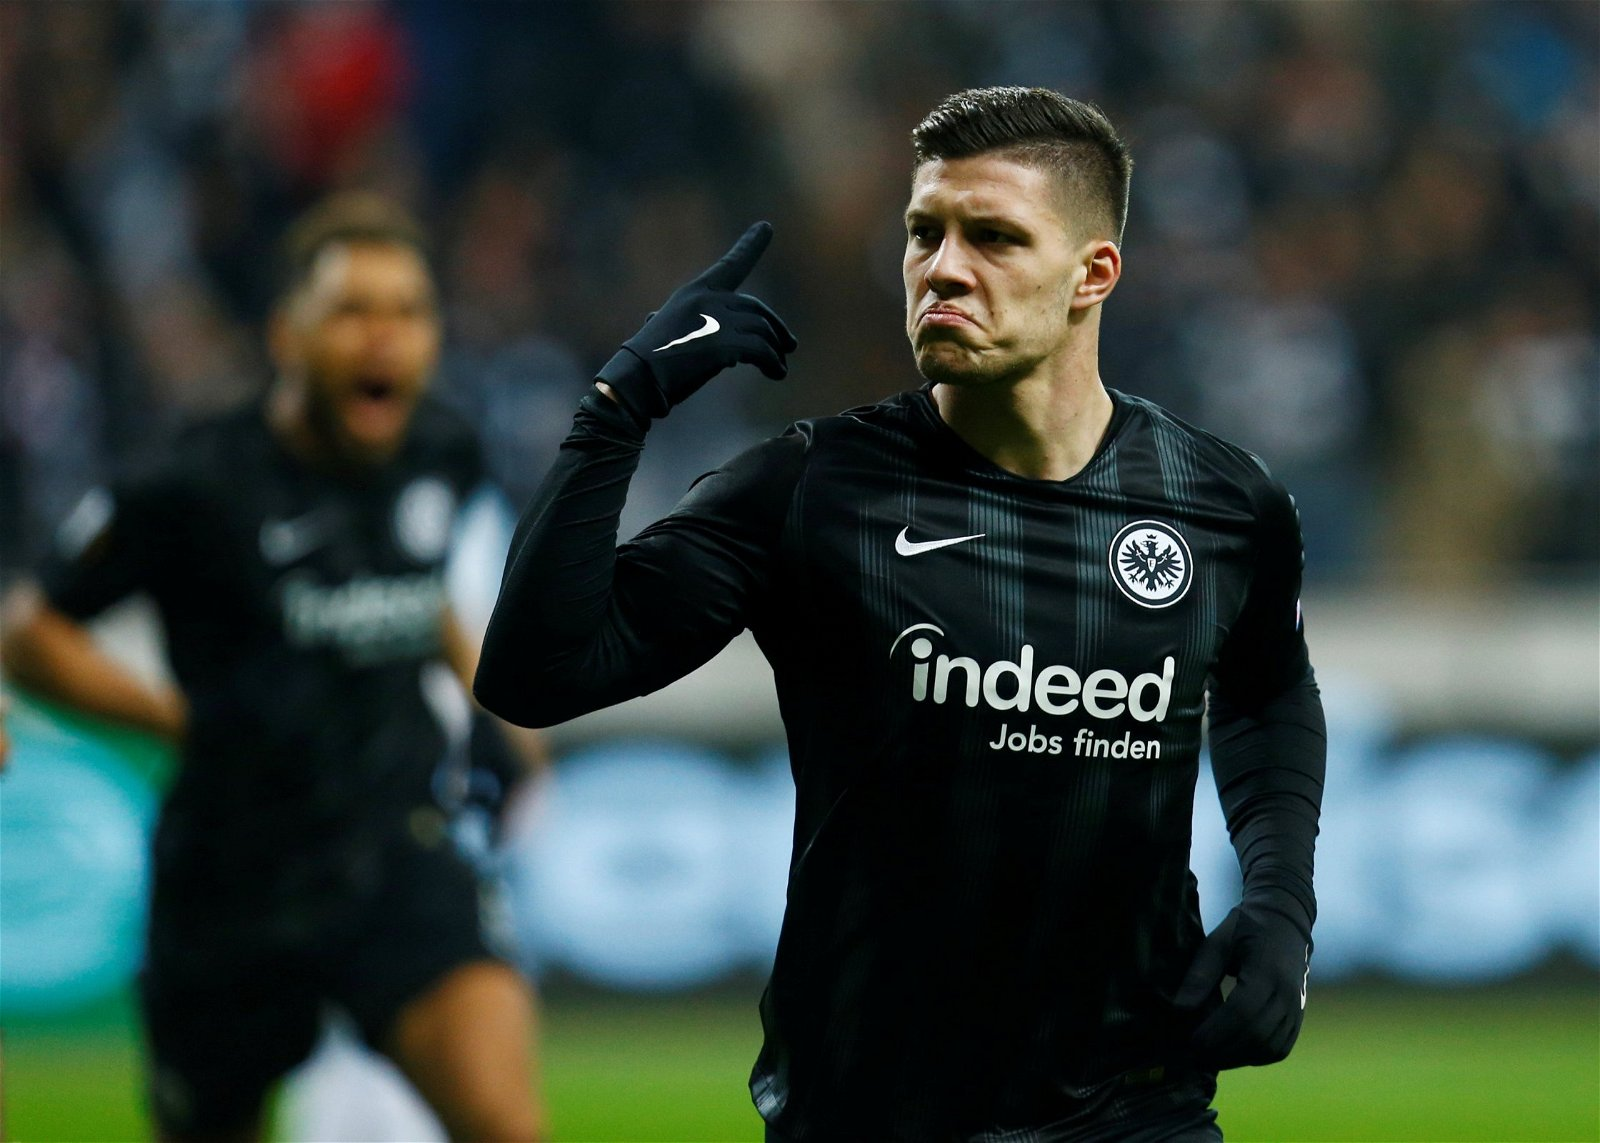 Luka Jovic celebrates - Sign Serbian hotshot, replace Cabaye: How Palace must use funds from potential exit - opinion